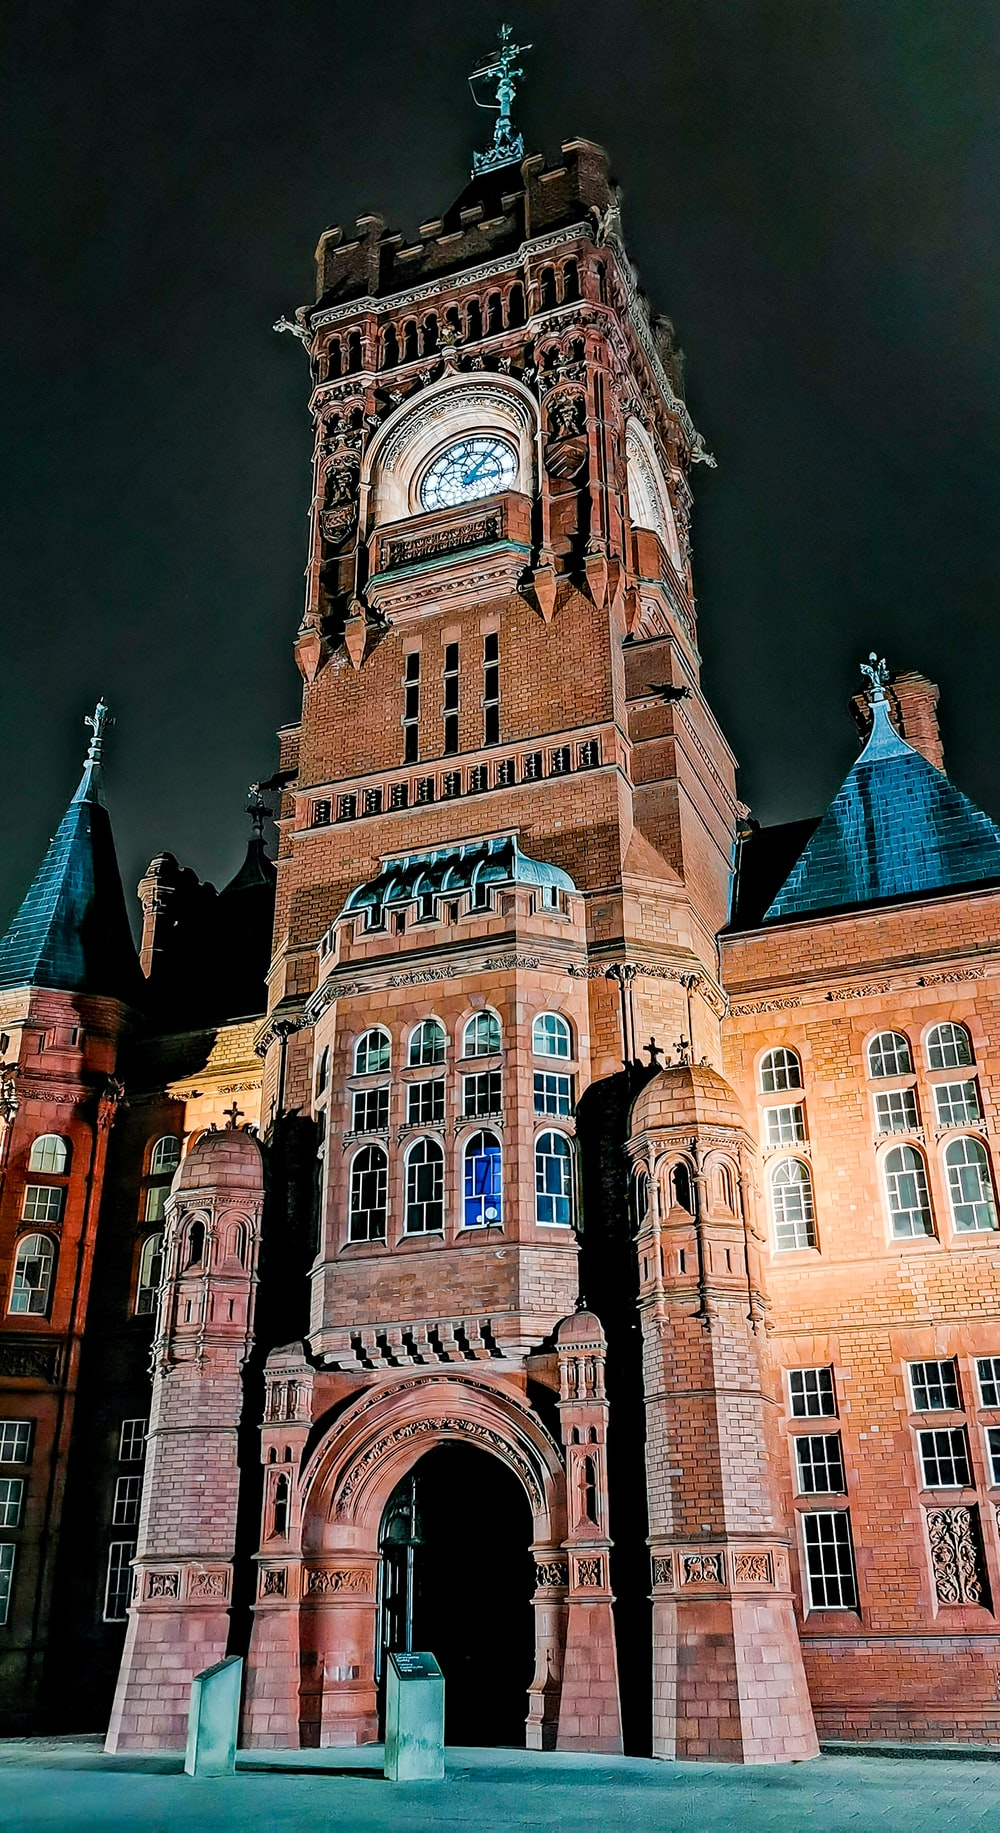 brown tower clock at night